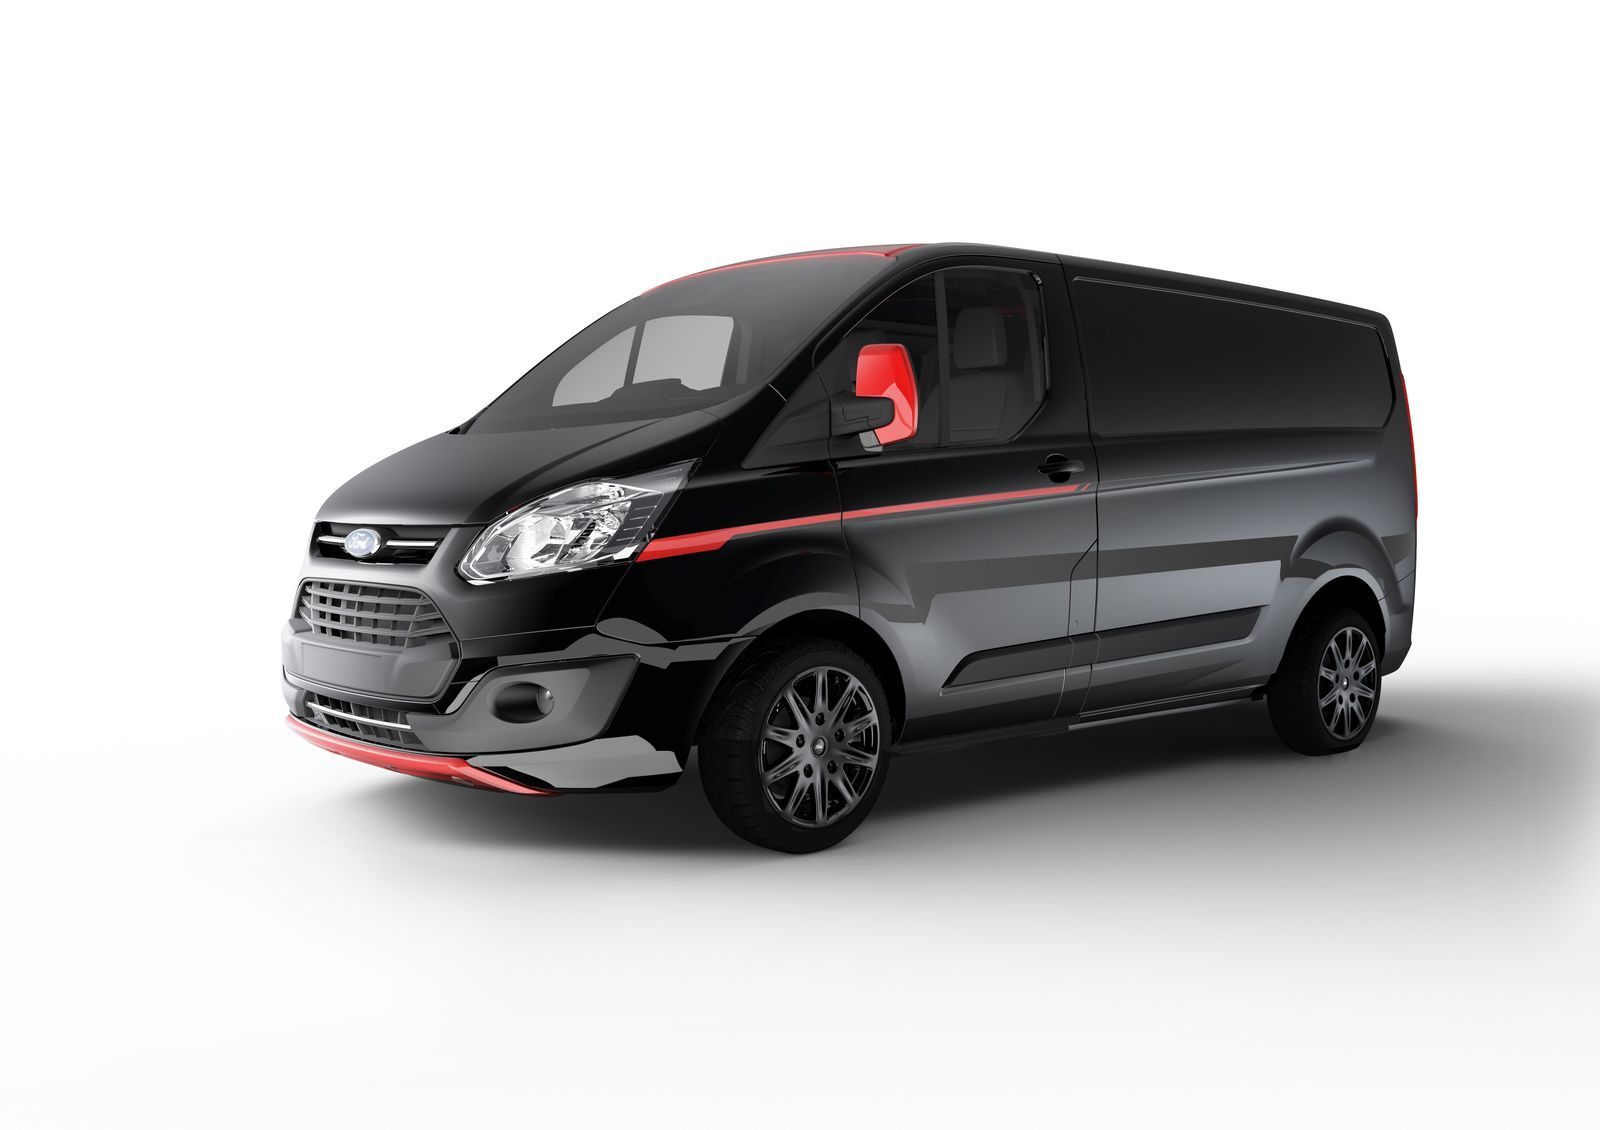 Ford Adds More Appeal To Transit With Custom Color And Sport